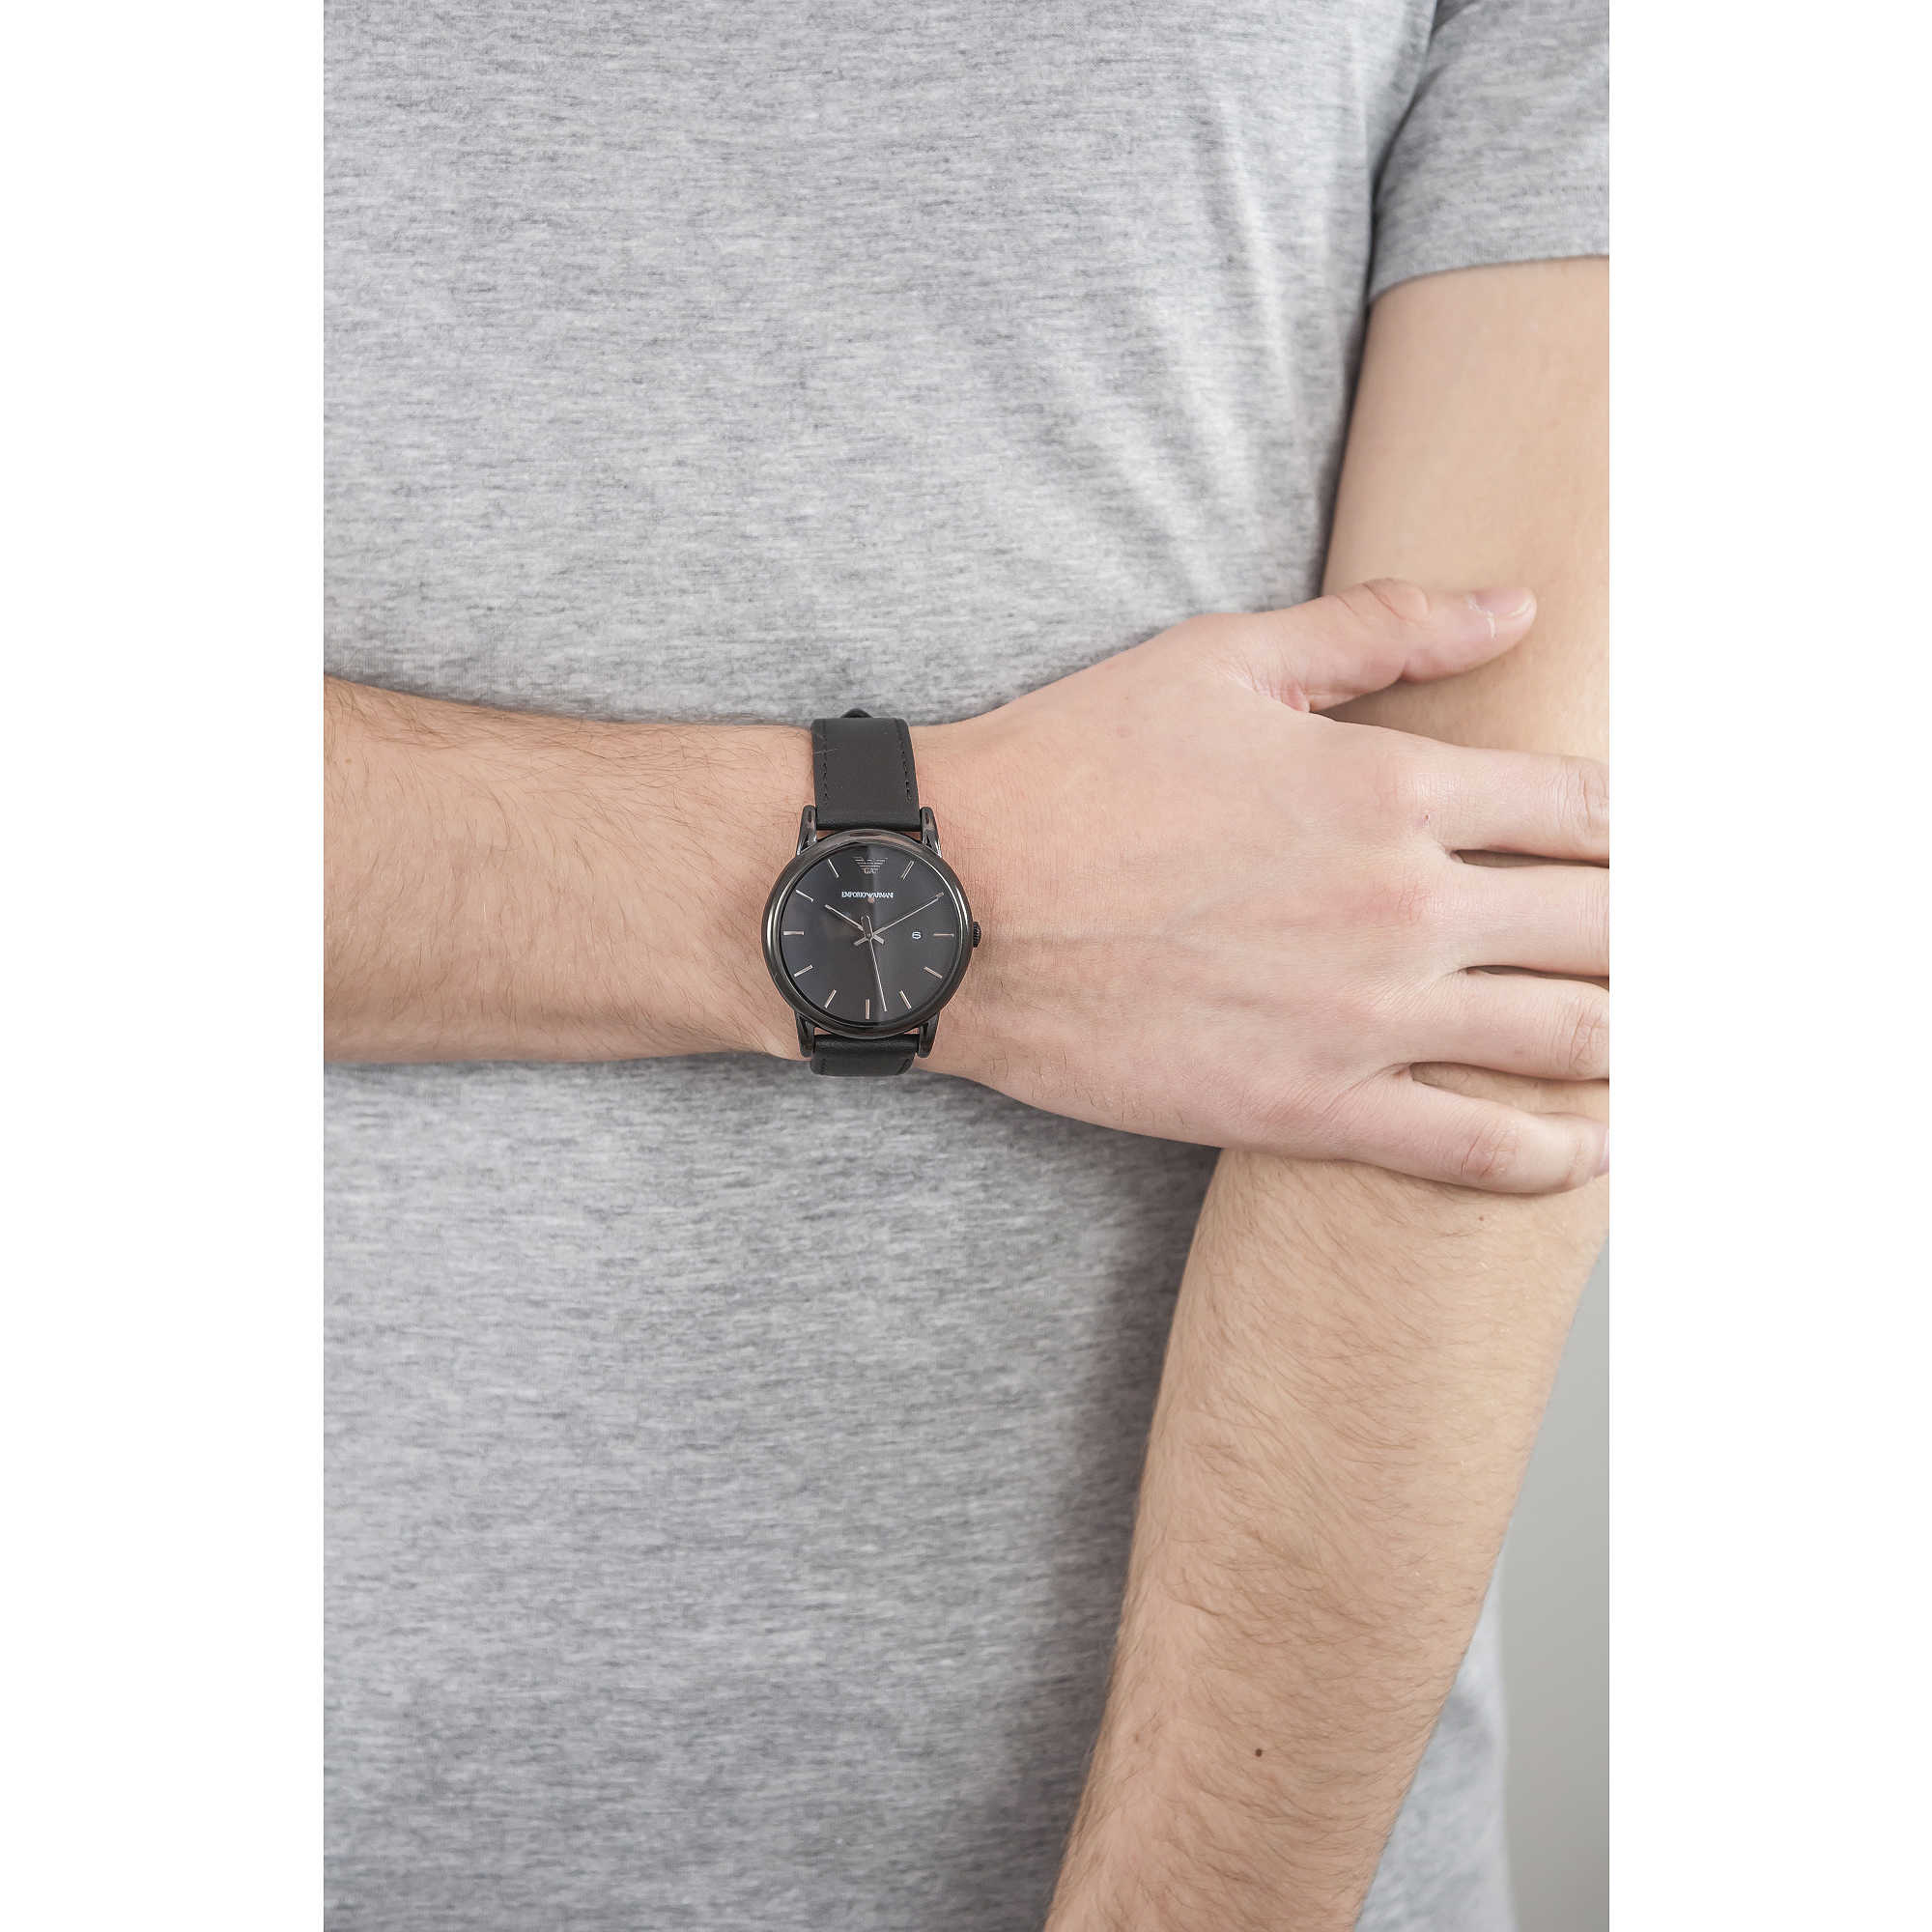 5477900a watch only time man Emporio Armani AR1732 only time Emporio Armani